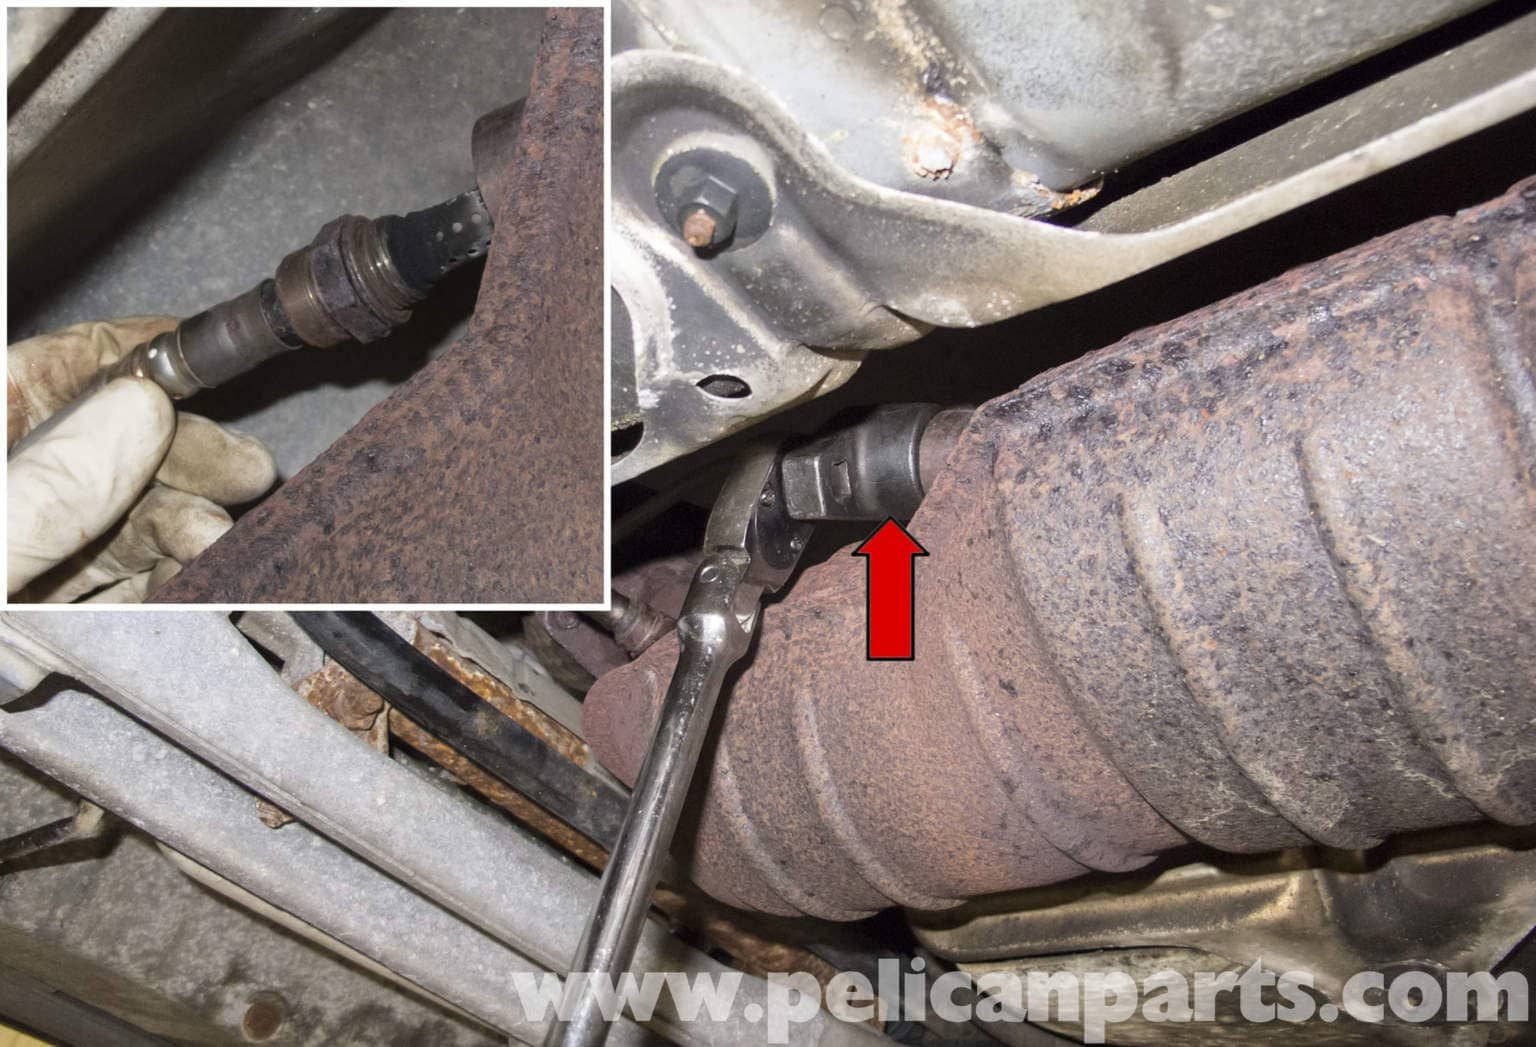 Volvo V70 Oxygen Sensor Replacement - Normally Aspirated Engine (1998-2007) - Pelican Parts DIY ...